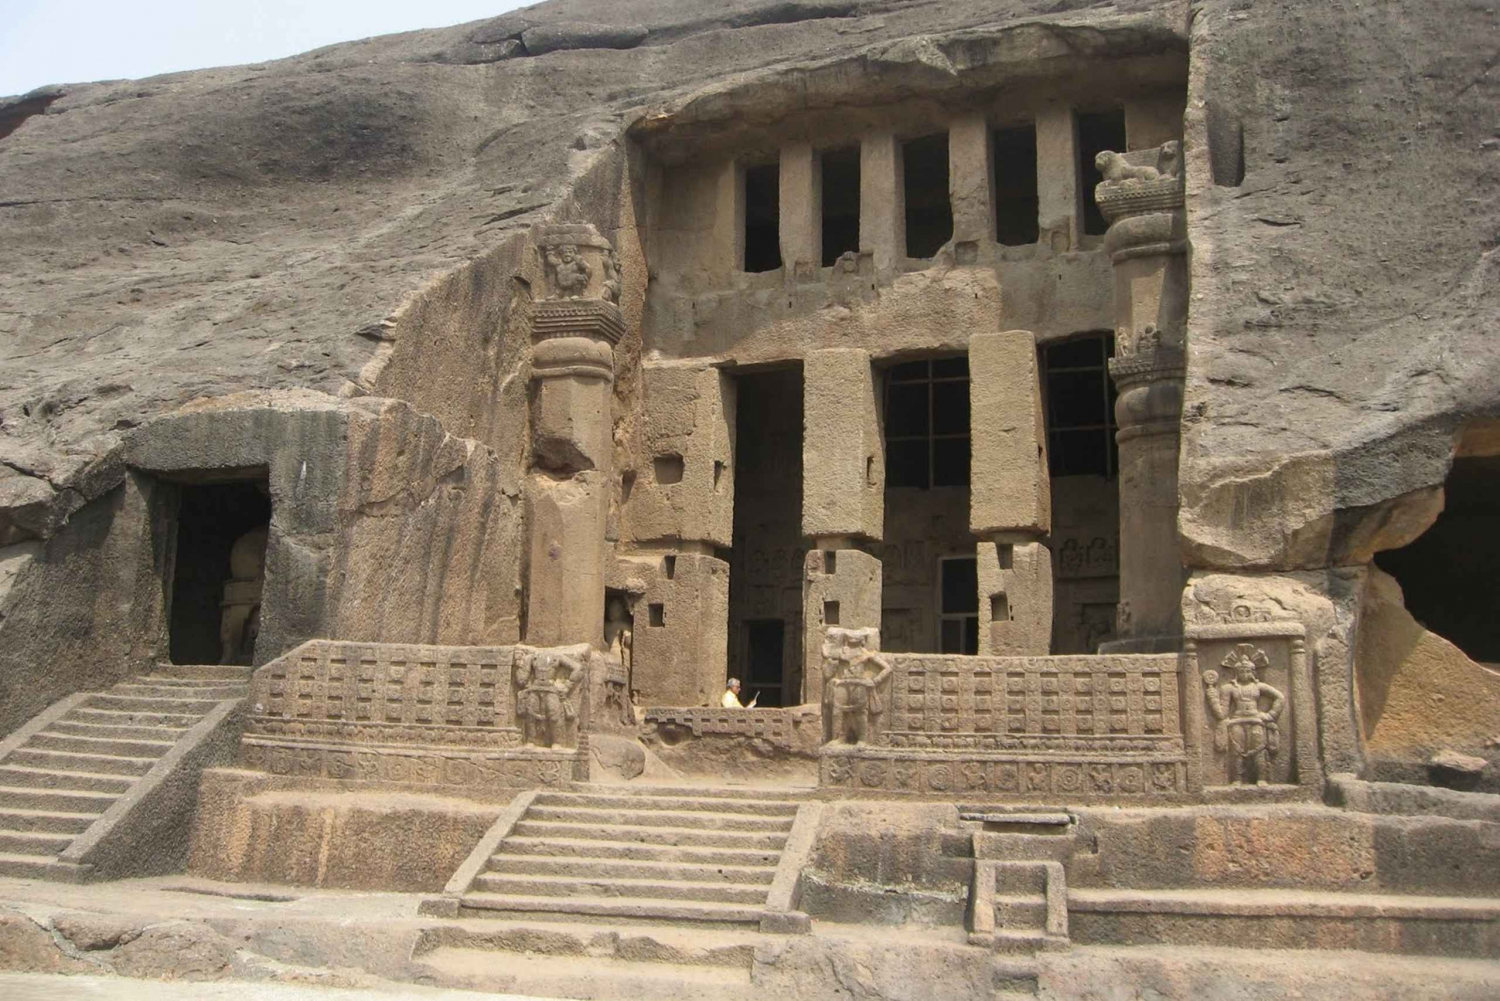 From Kanheri Caves and National Park Tour